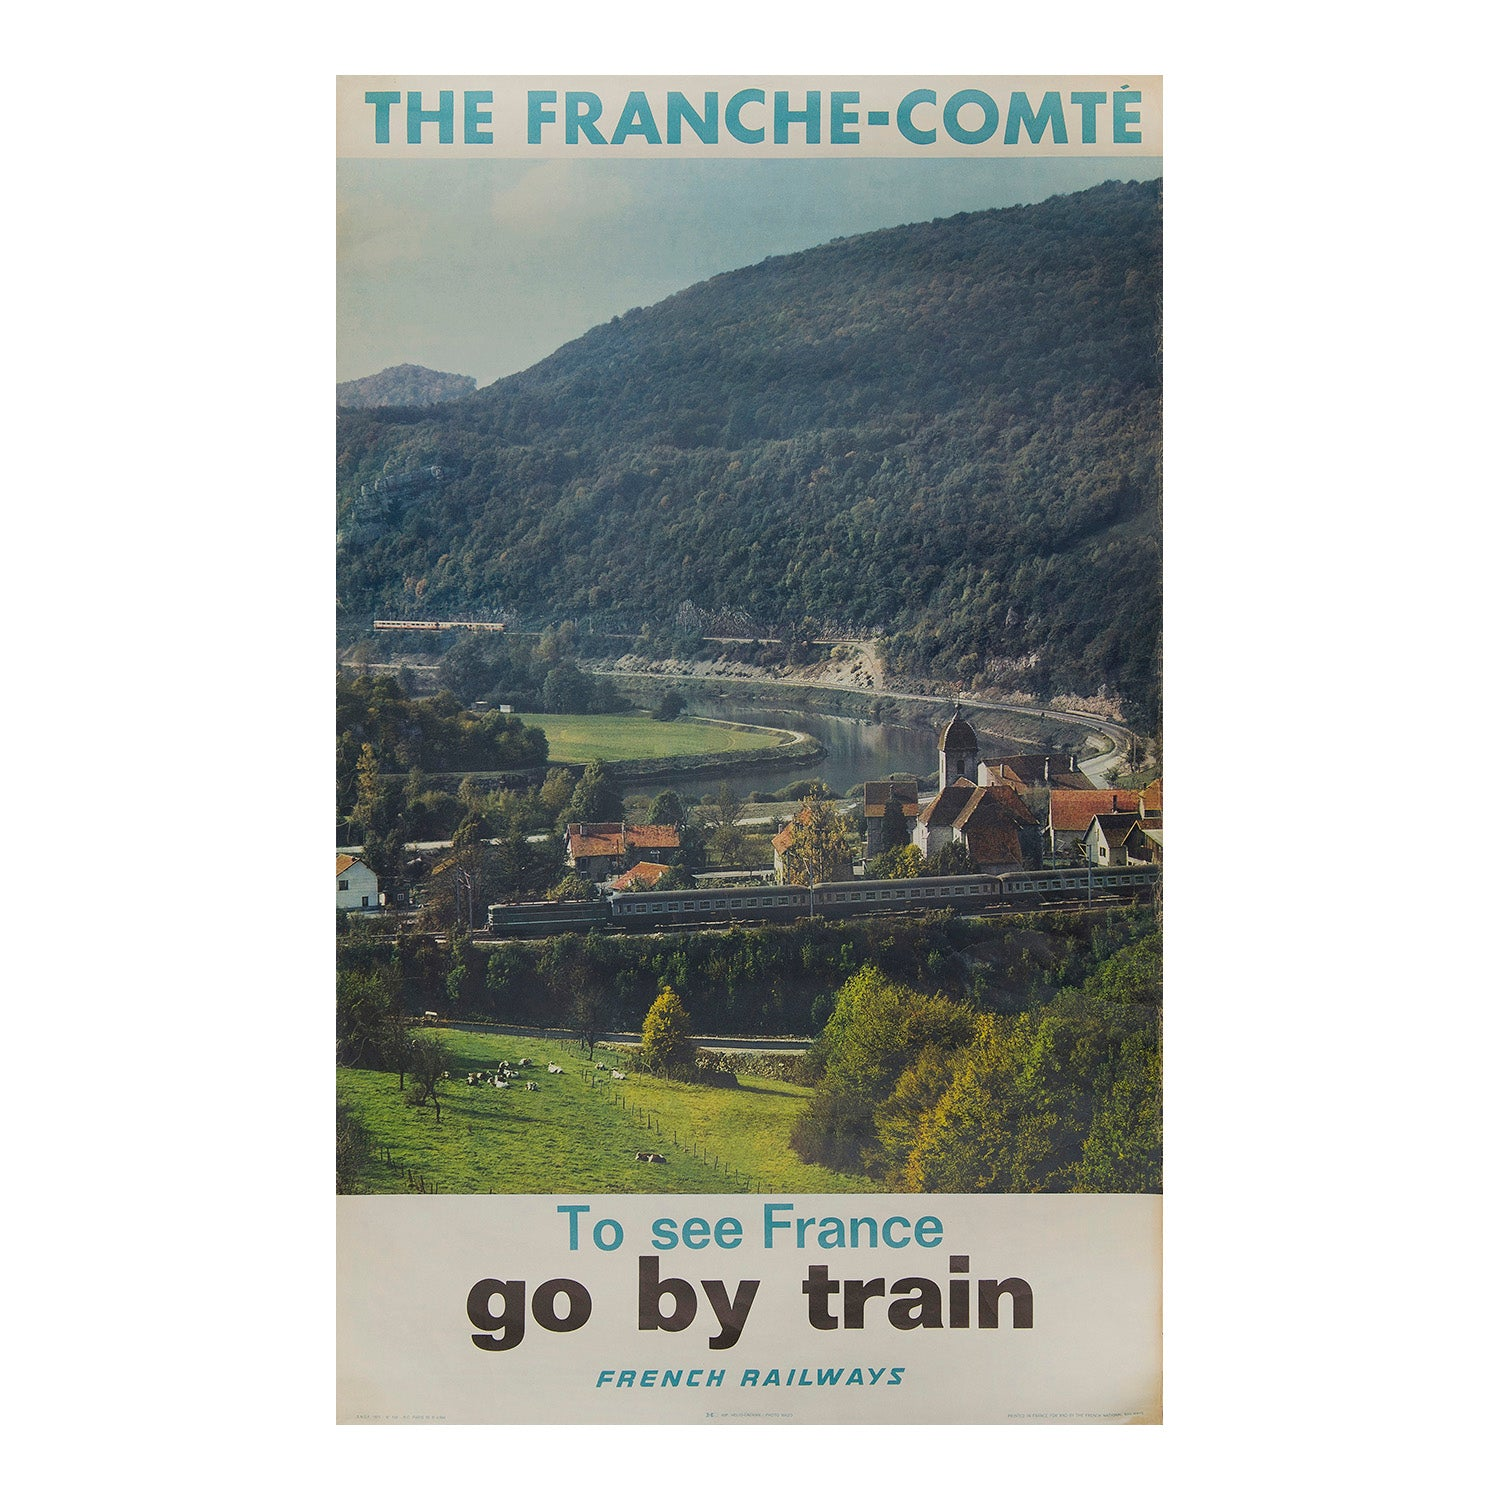 The Franche-Comté. To see France go by train. French Railways